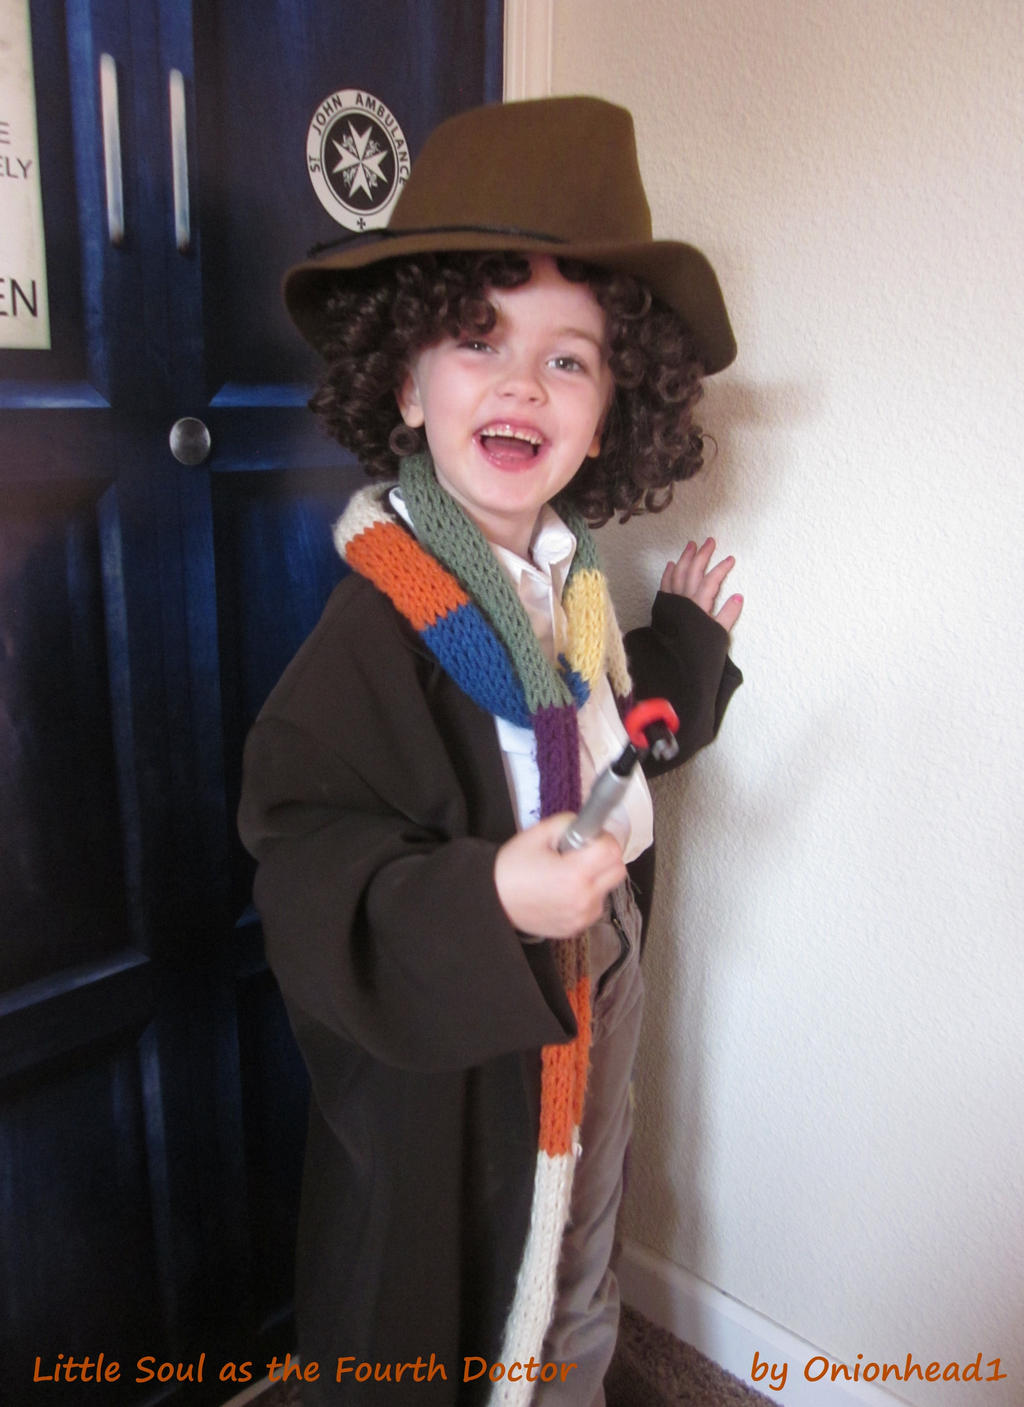 Little Soul as the Fourth Doctor by onionhead1